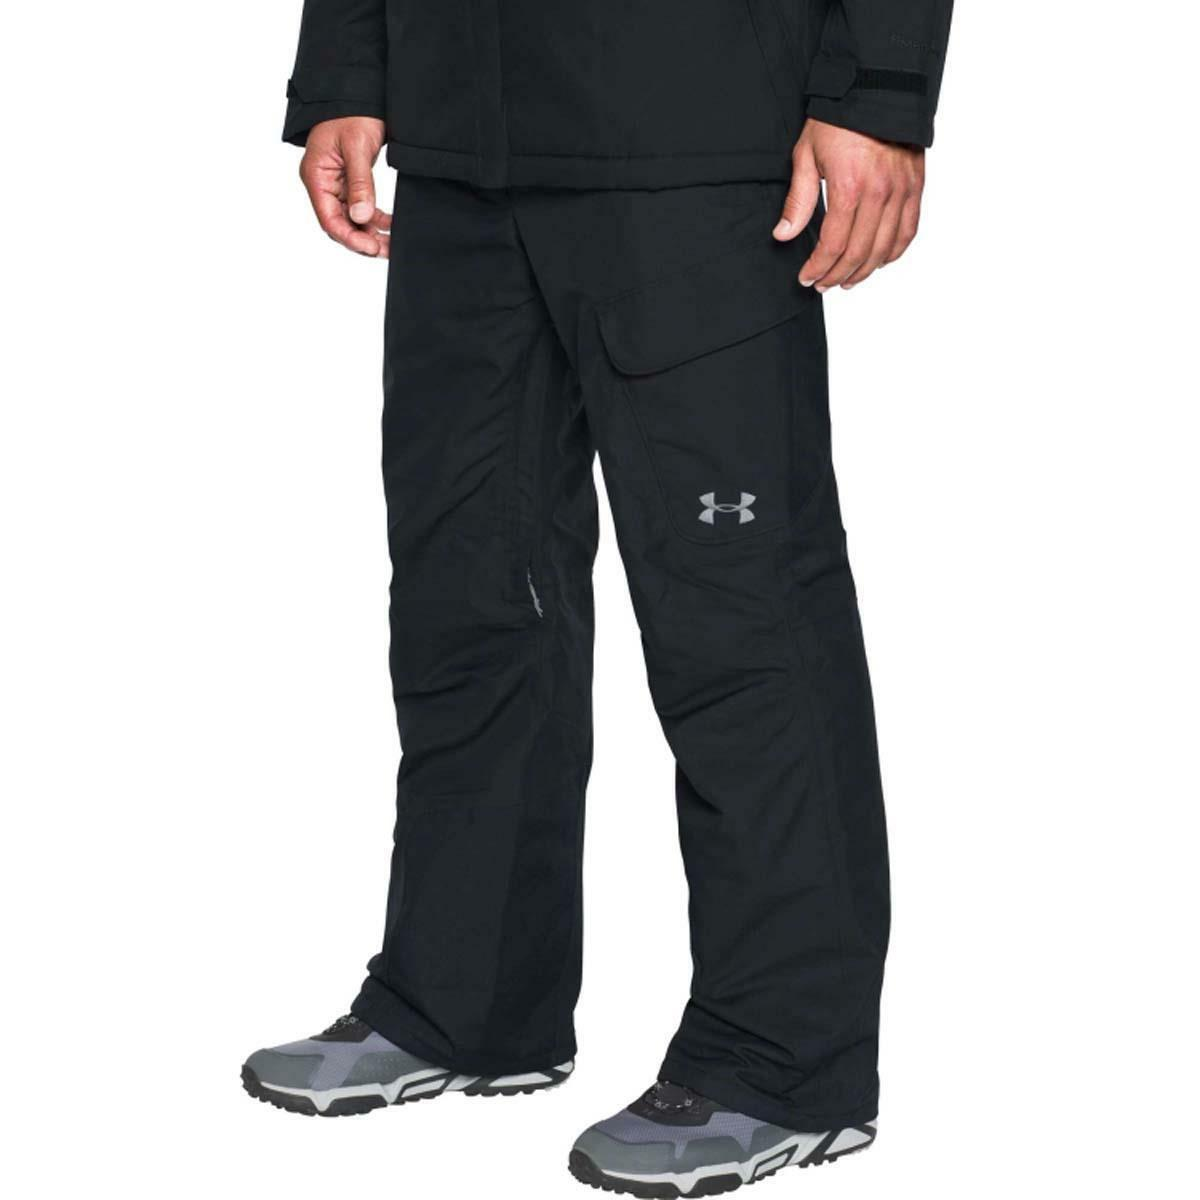 NWT Under Armour Mens ColdGear Infrared Storm Chutes Ski Pan